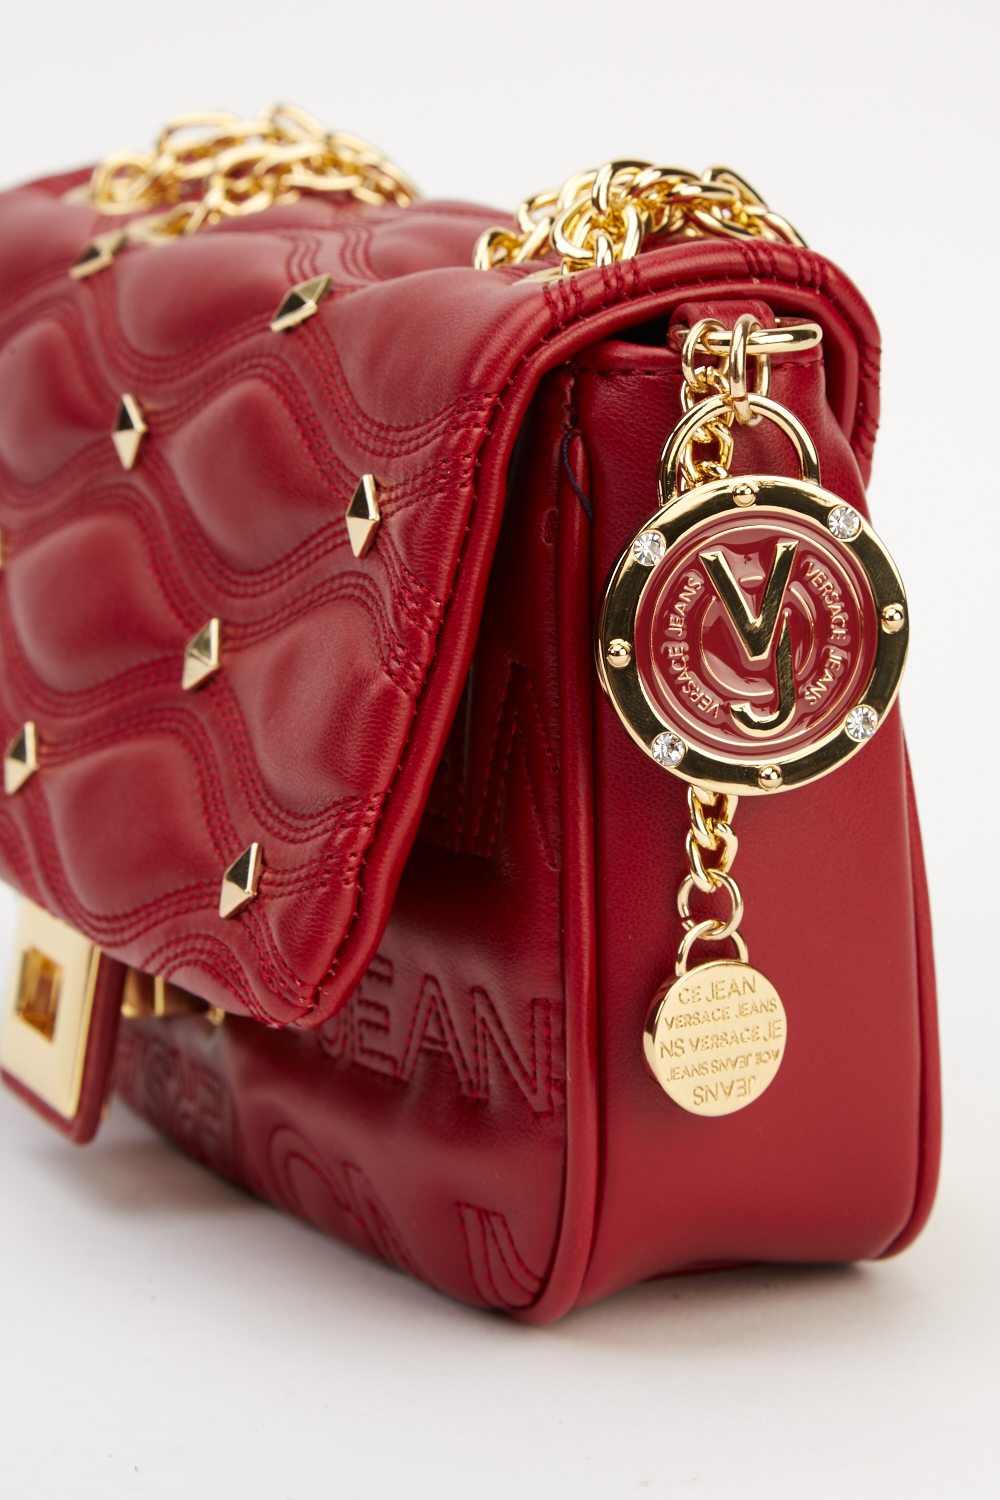 93307d2cb989 Versace Jeans Burgundy Small Bag - Limited edition